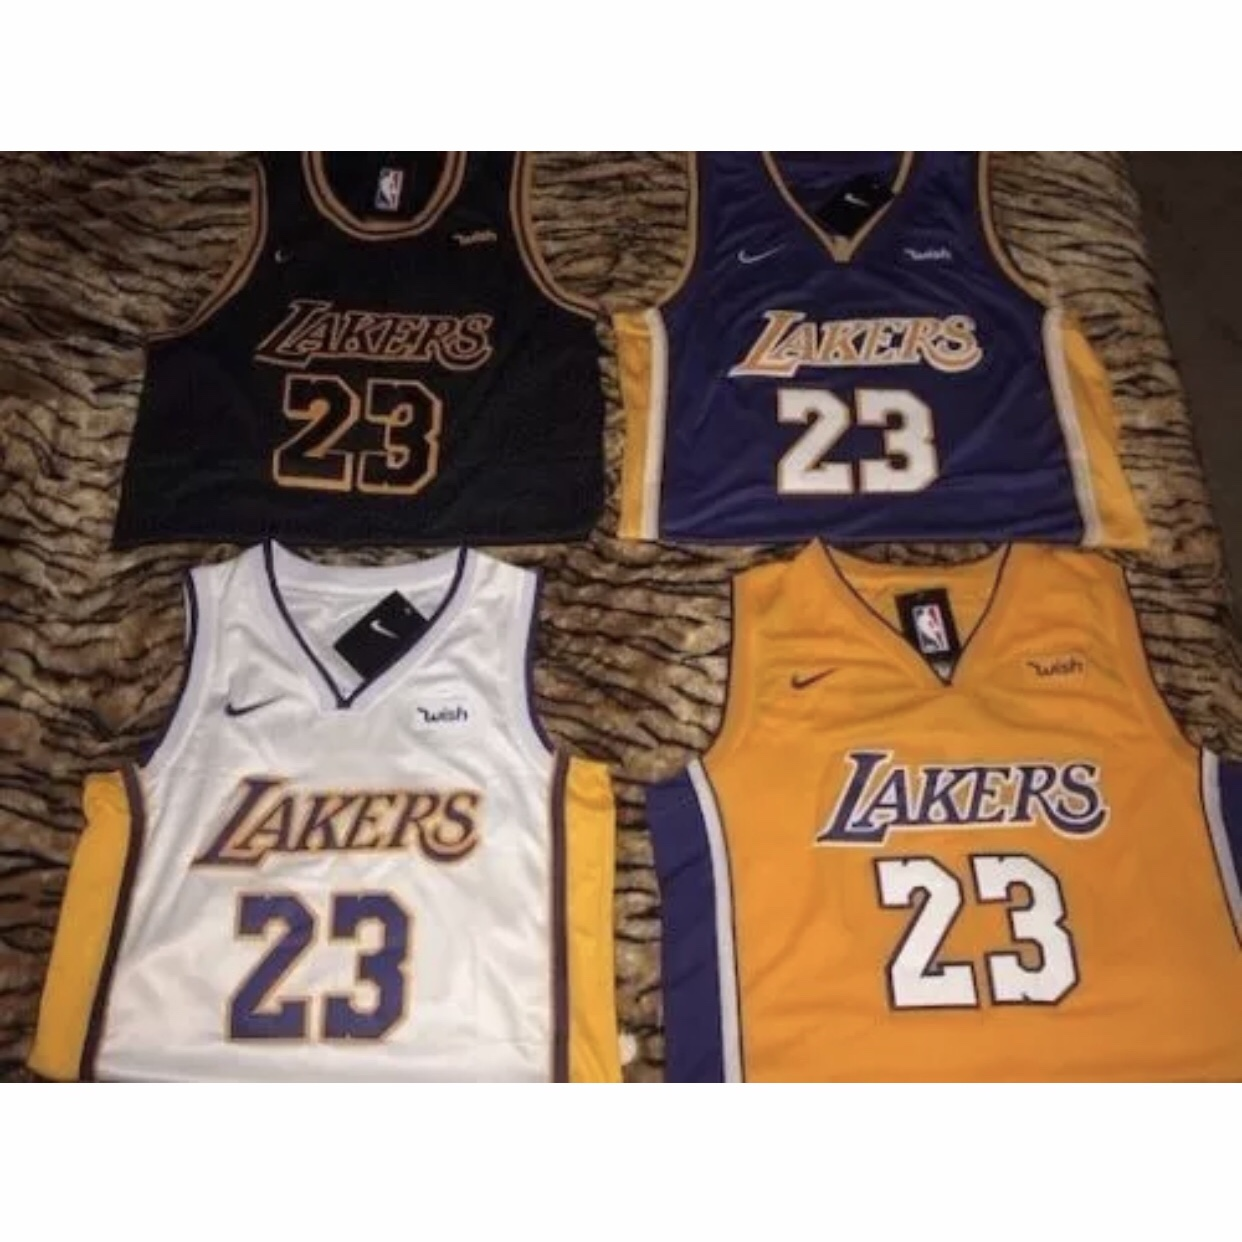 cheap for discount f4463 54972 Lebron James Lakers #23 Jersey Edition Black Purple... - Depop